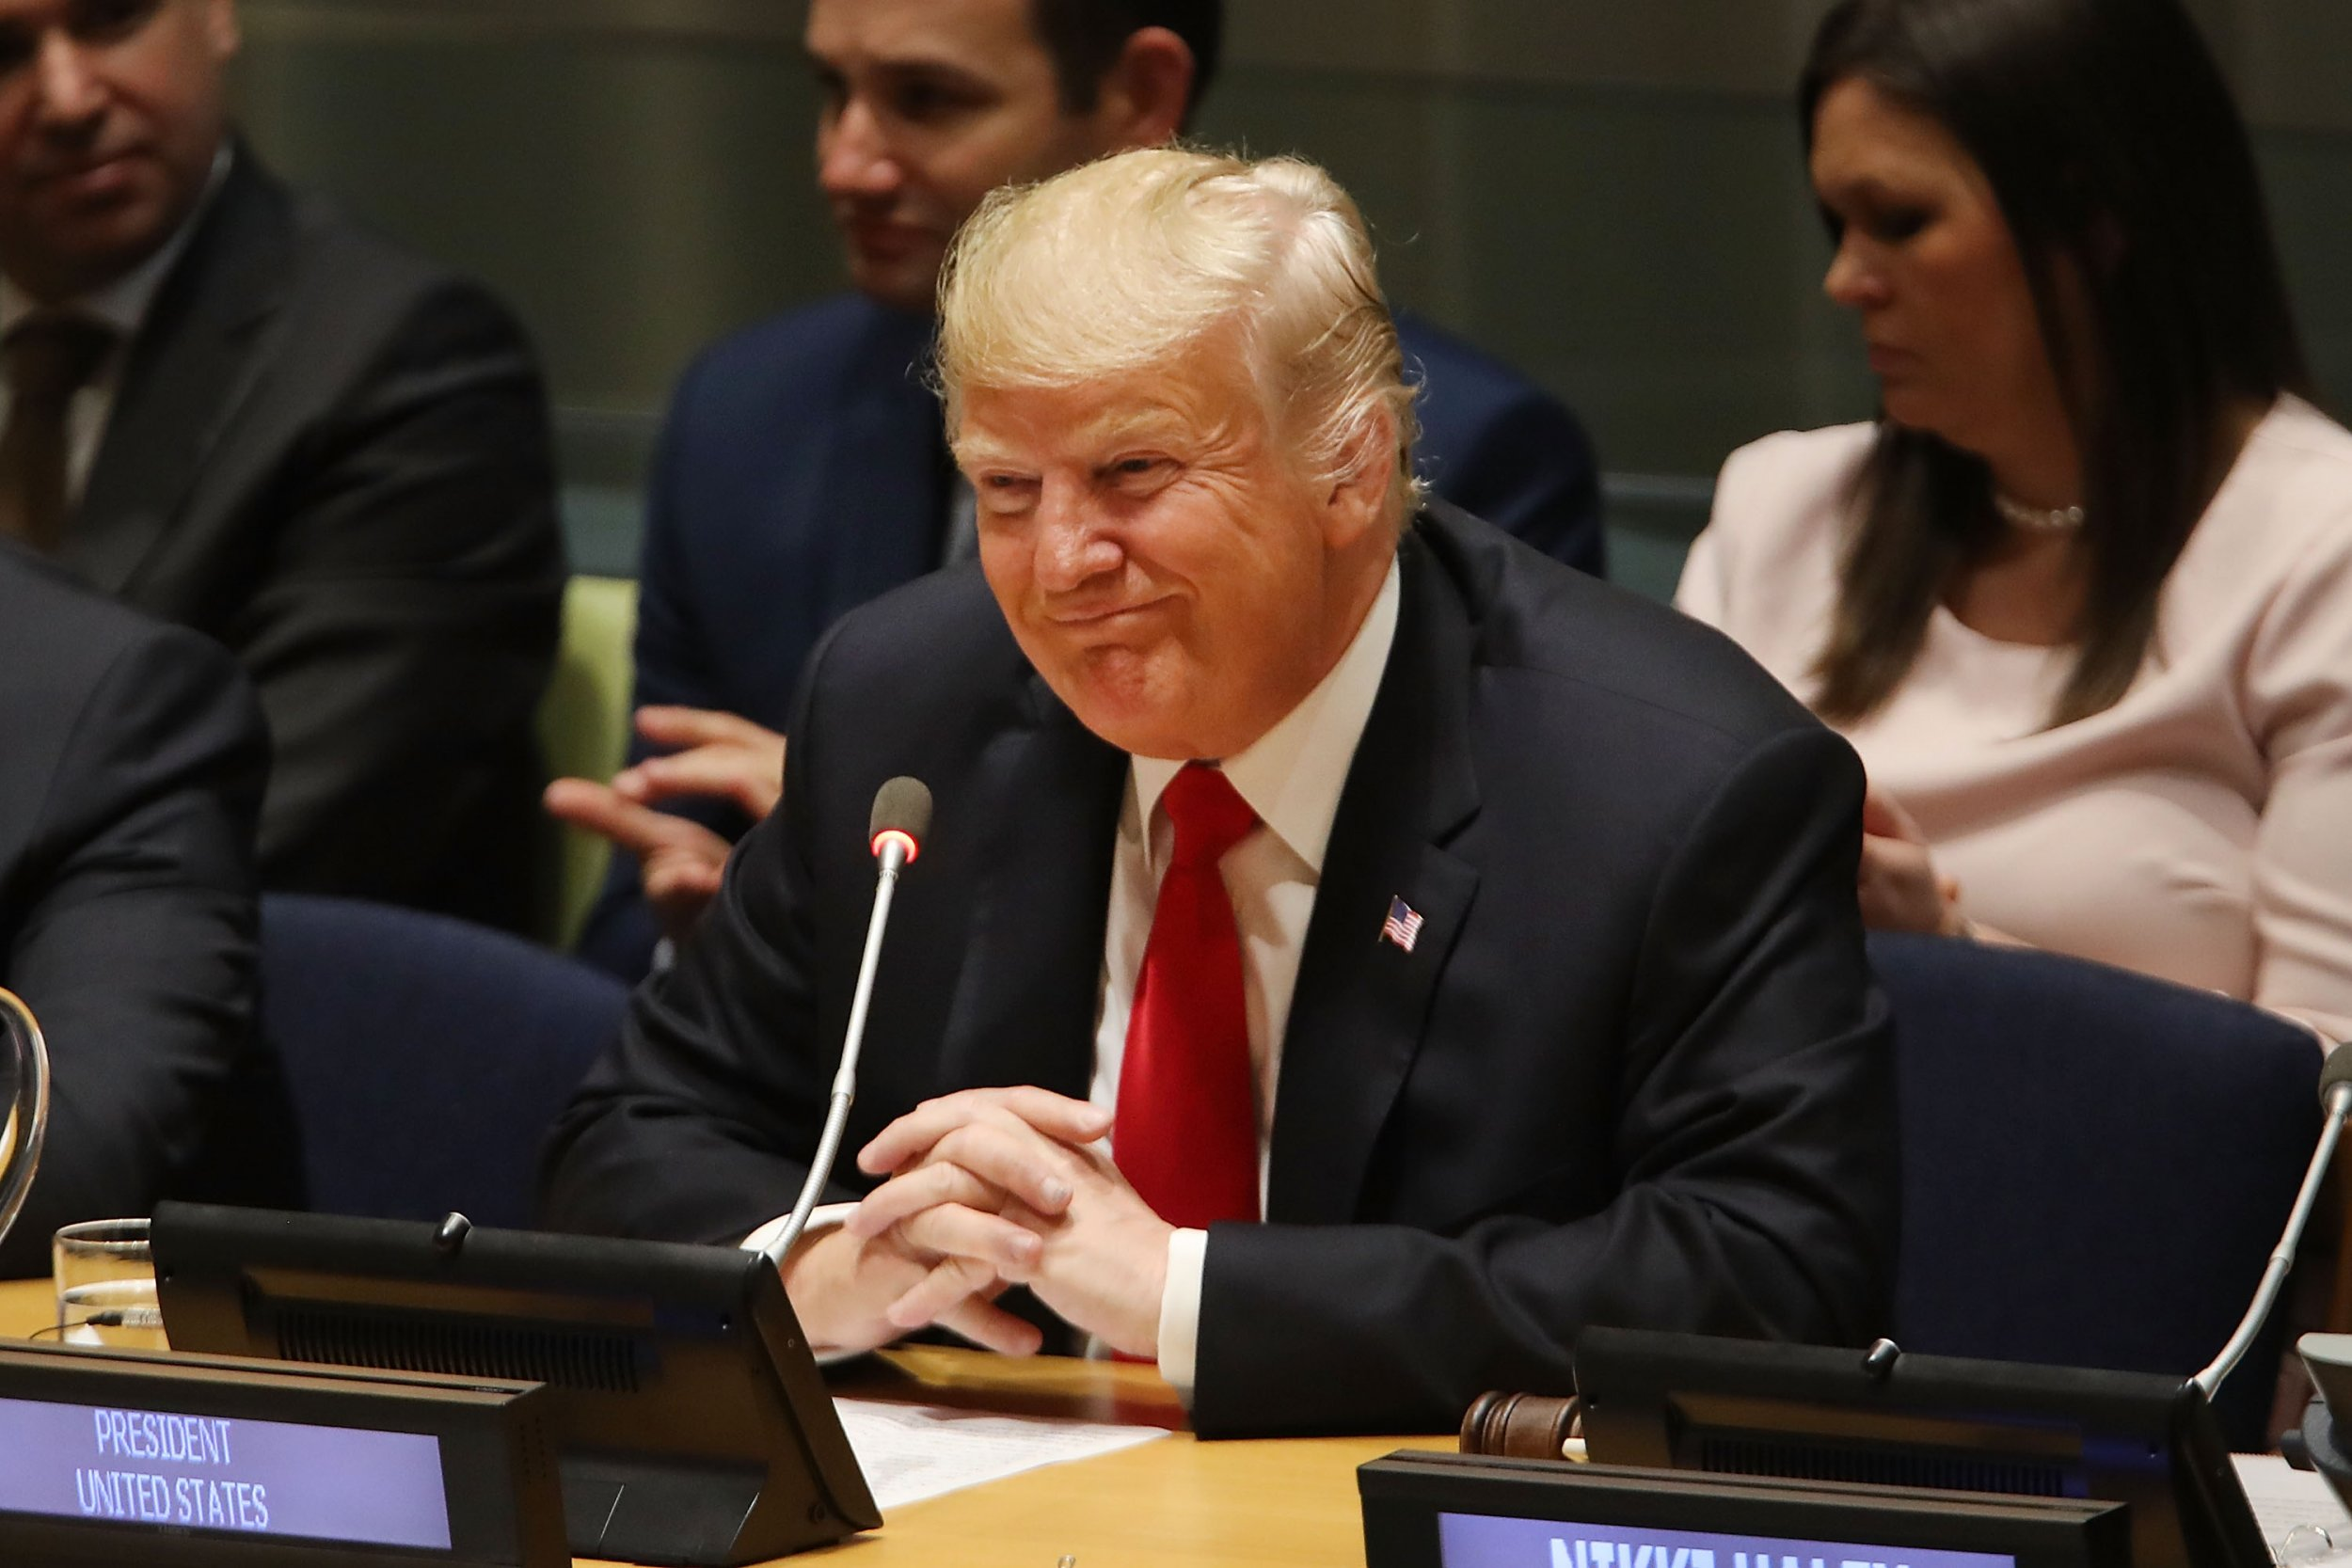 Watch: Donald Trump laughed at by U.N. General Assembly for claiming his administration is greatest in history